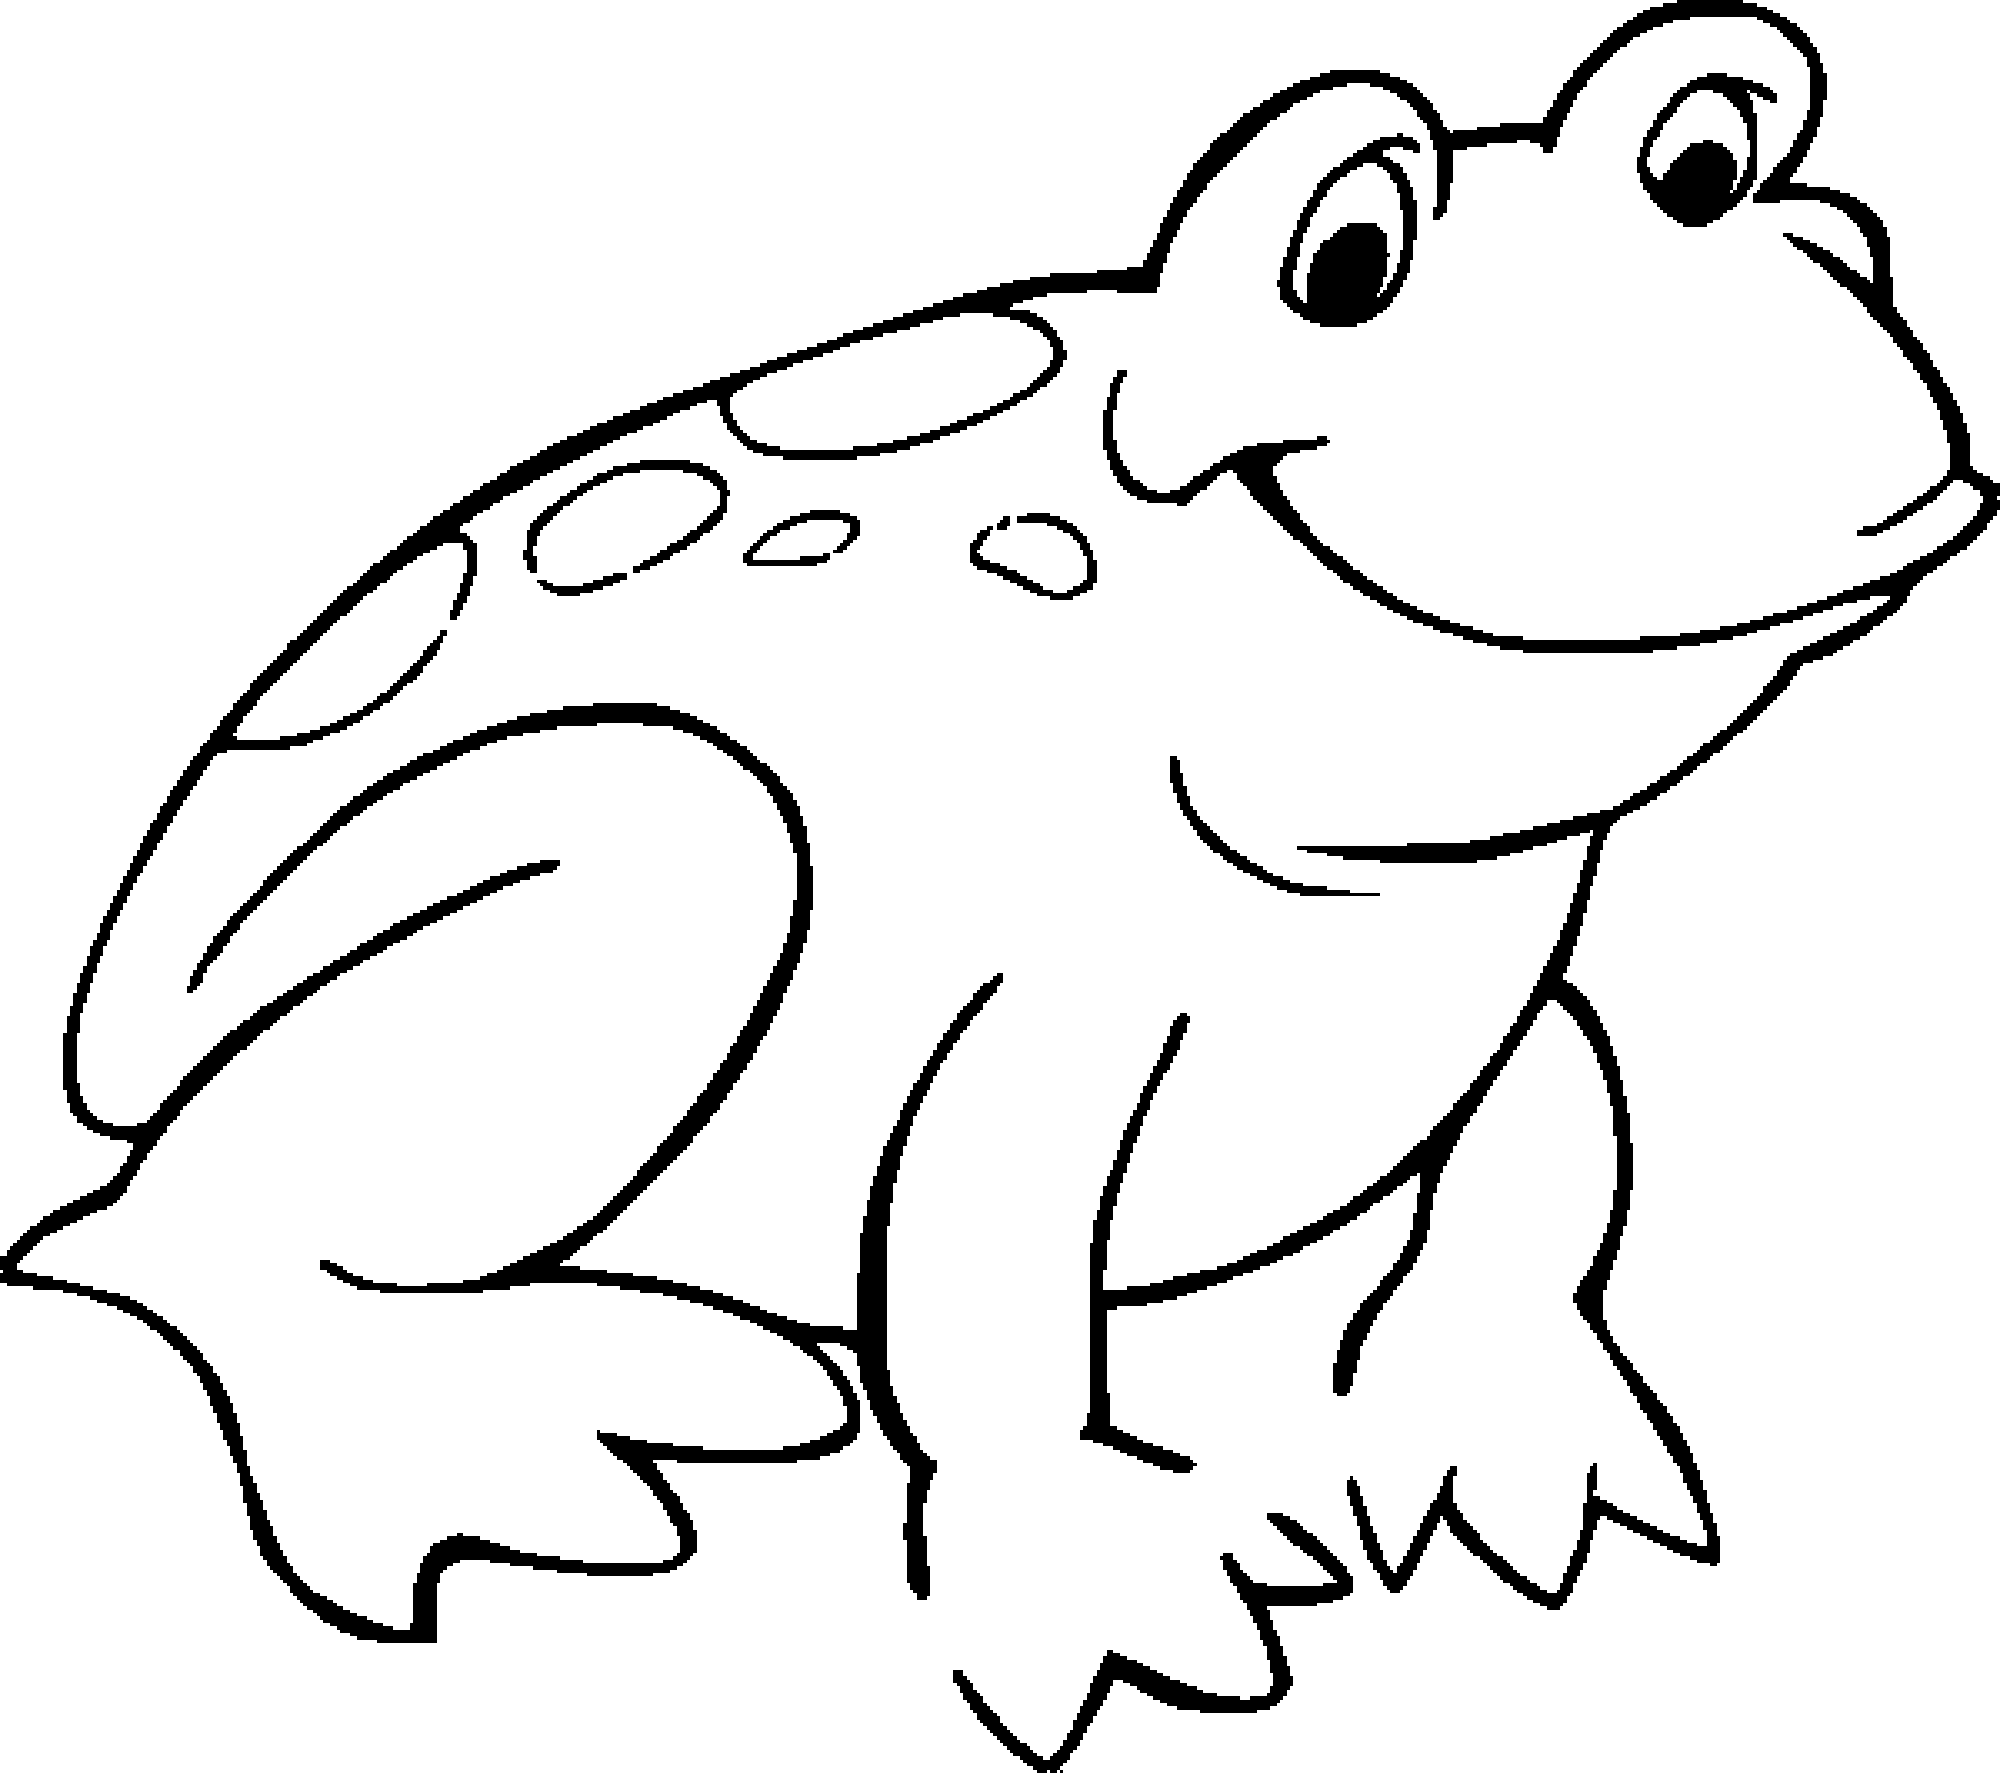 coloring book picture of a frog frogs coloring pages to download and print for free of coloring frog book picture a